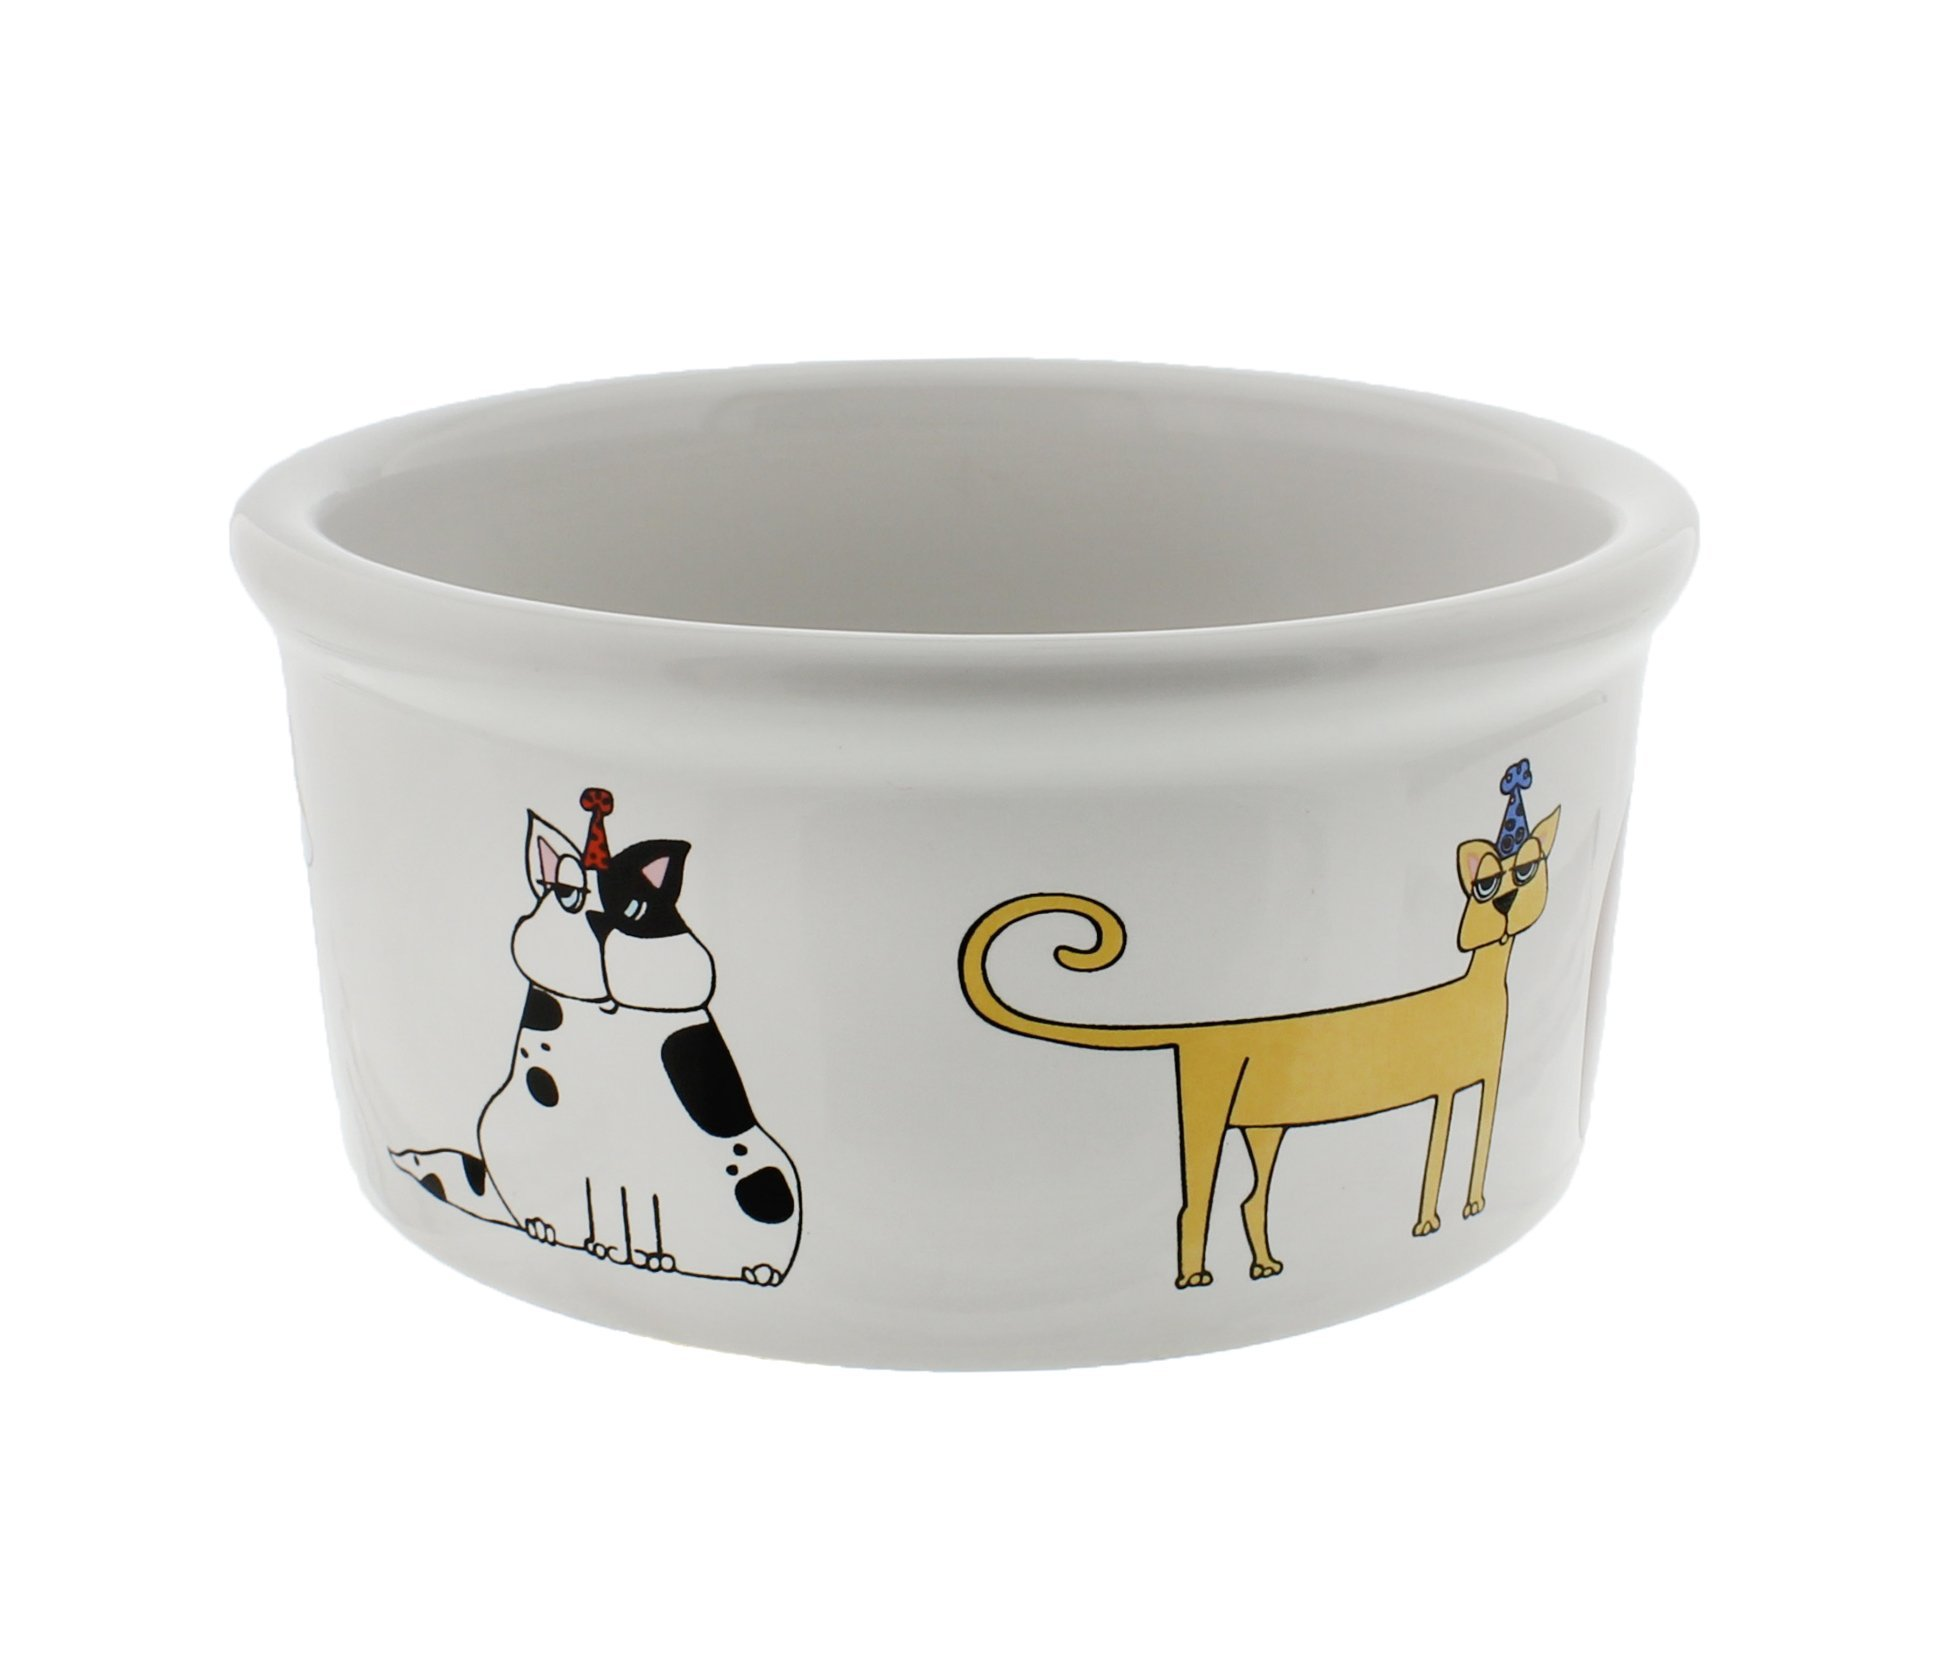 Signature Housewares Cat Party Bowl, Small